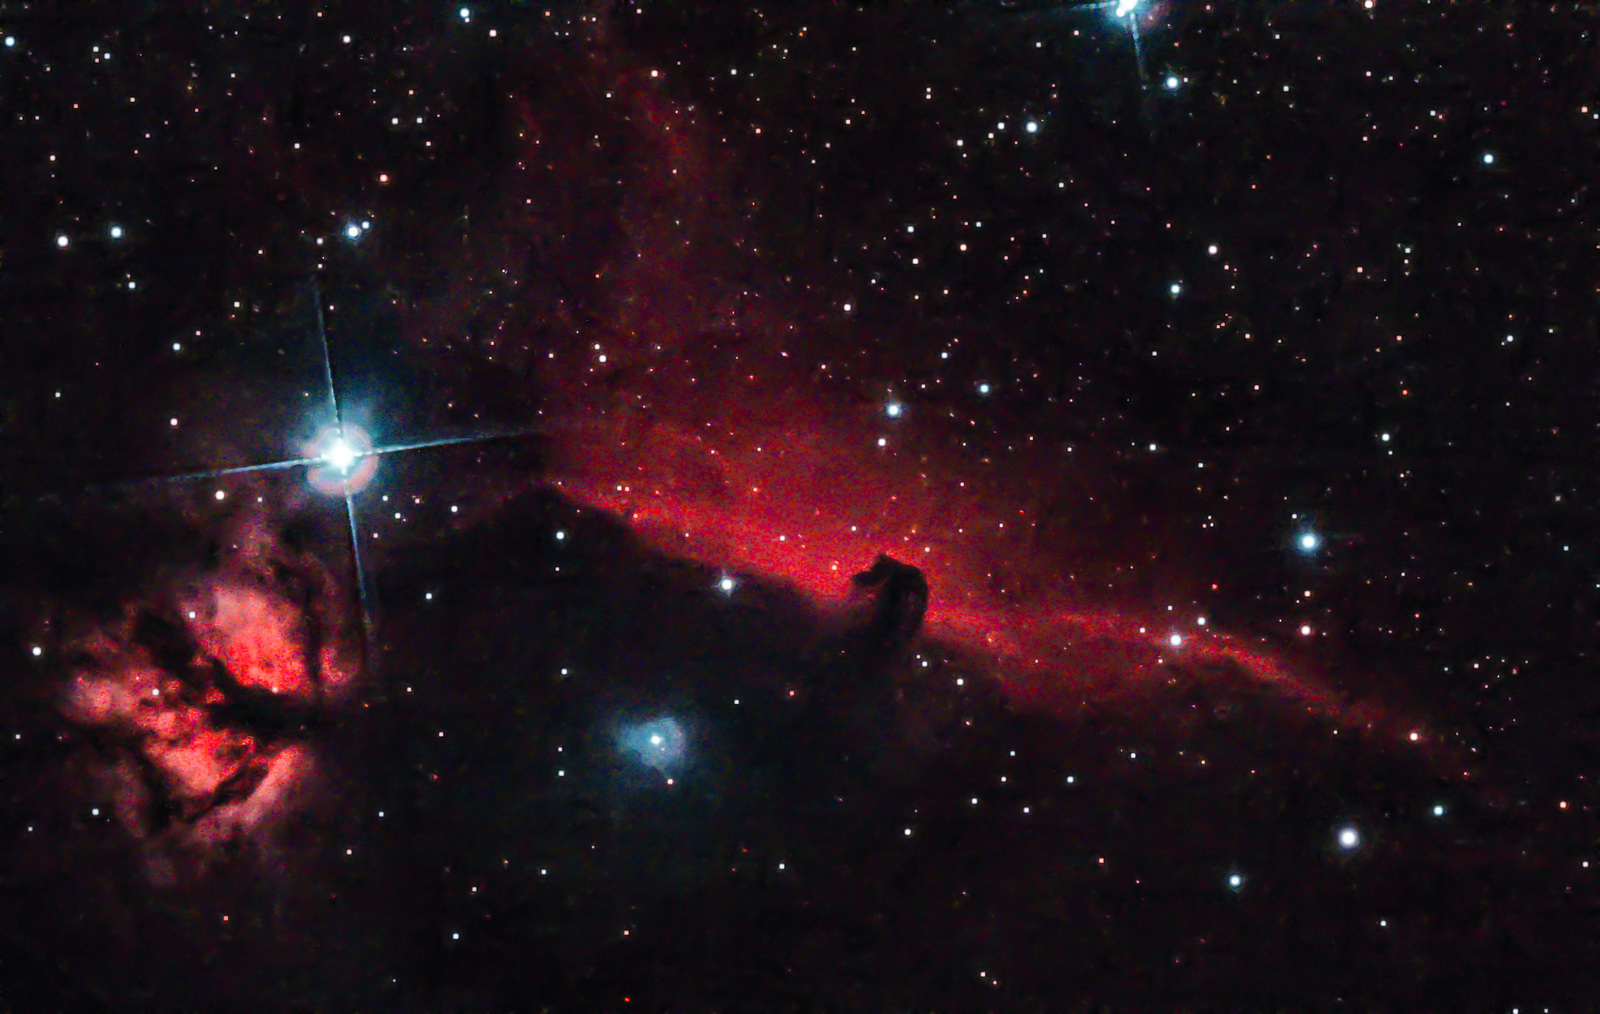 Horsehead & Flame with modified EOS 1200d & CLS filter